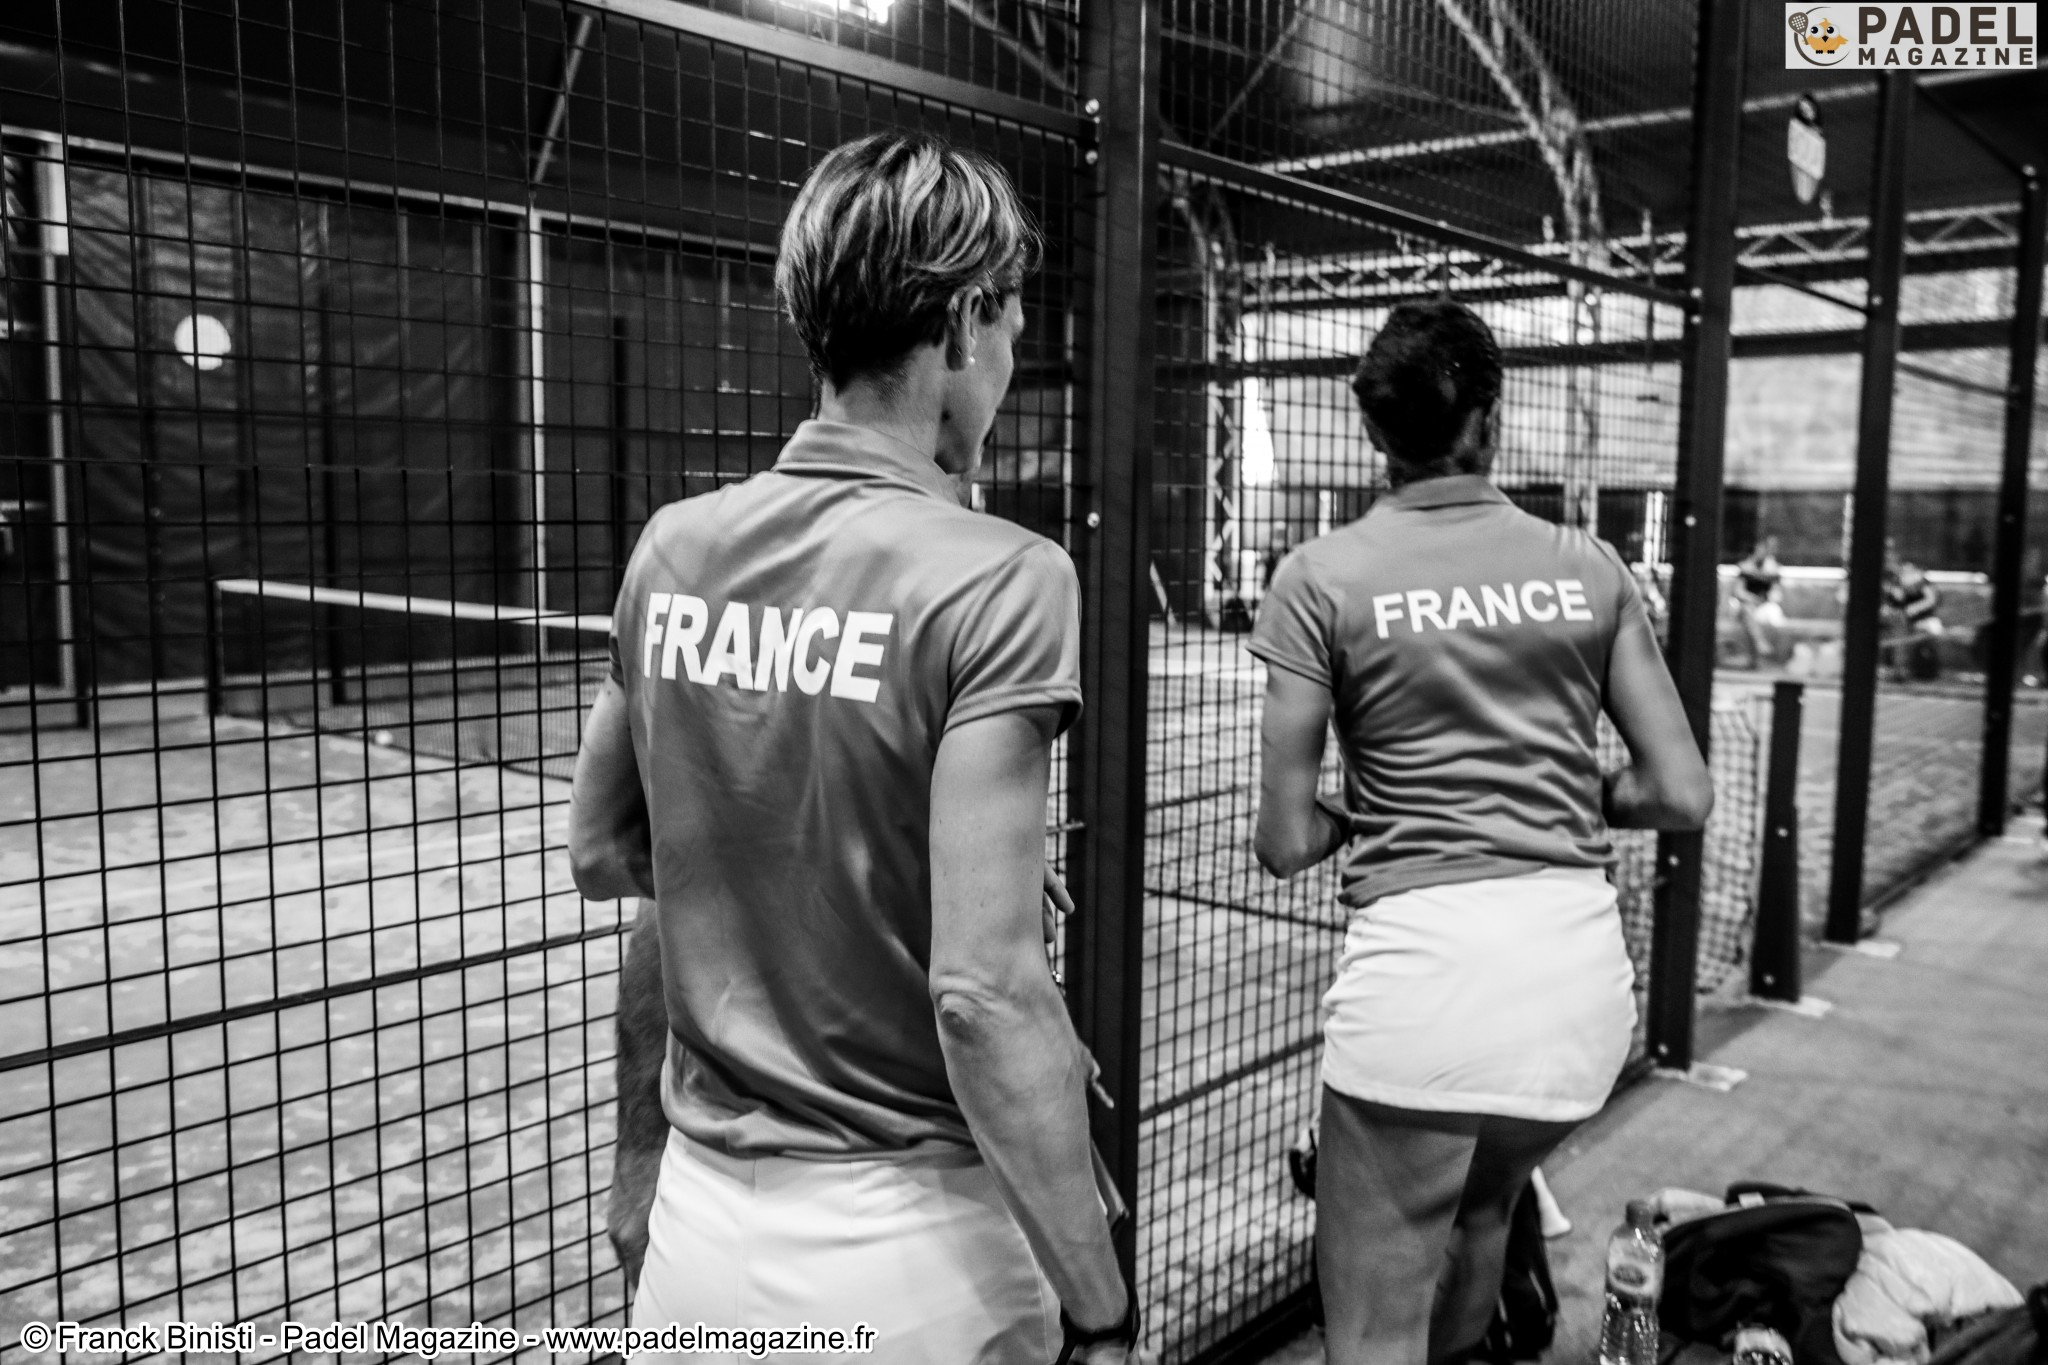 End of women's padel tournaments?